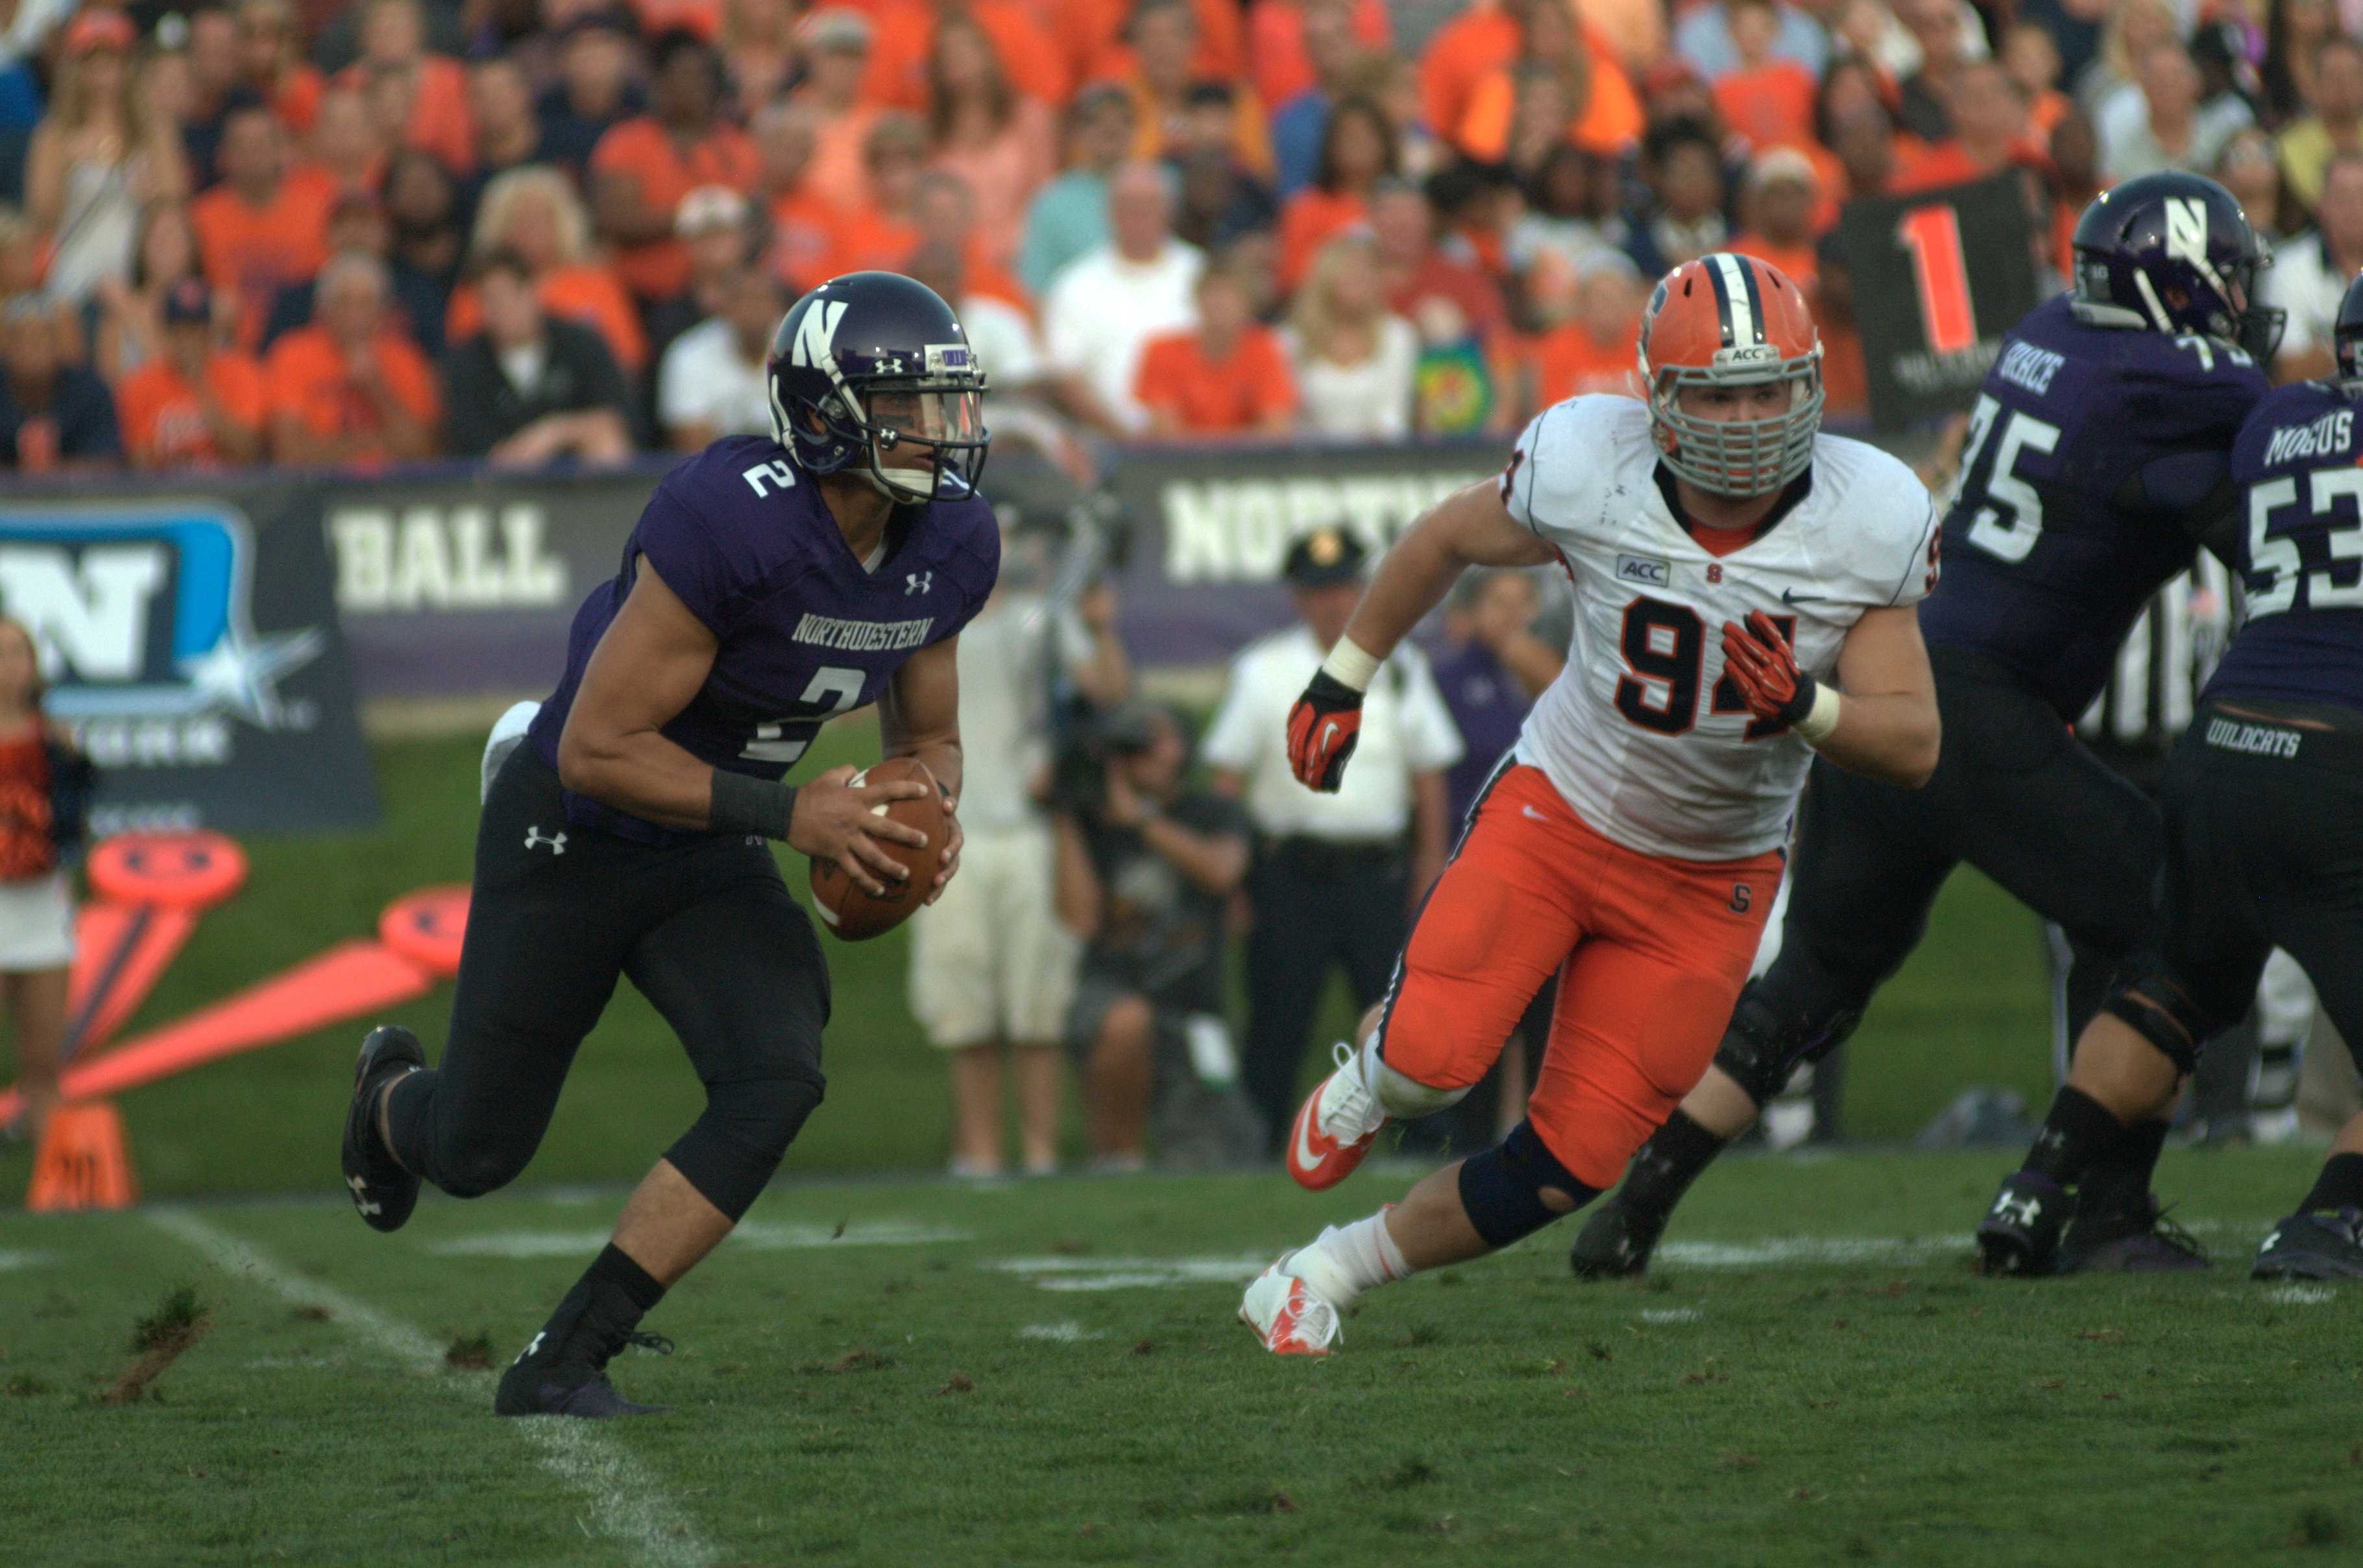 Senior quarterback Kain Colter looks to run the ball against Syracuse. Colter finished the game with 87 yards running and 116 yards passing.